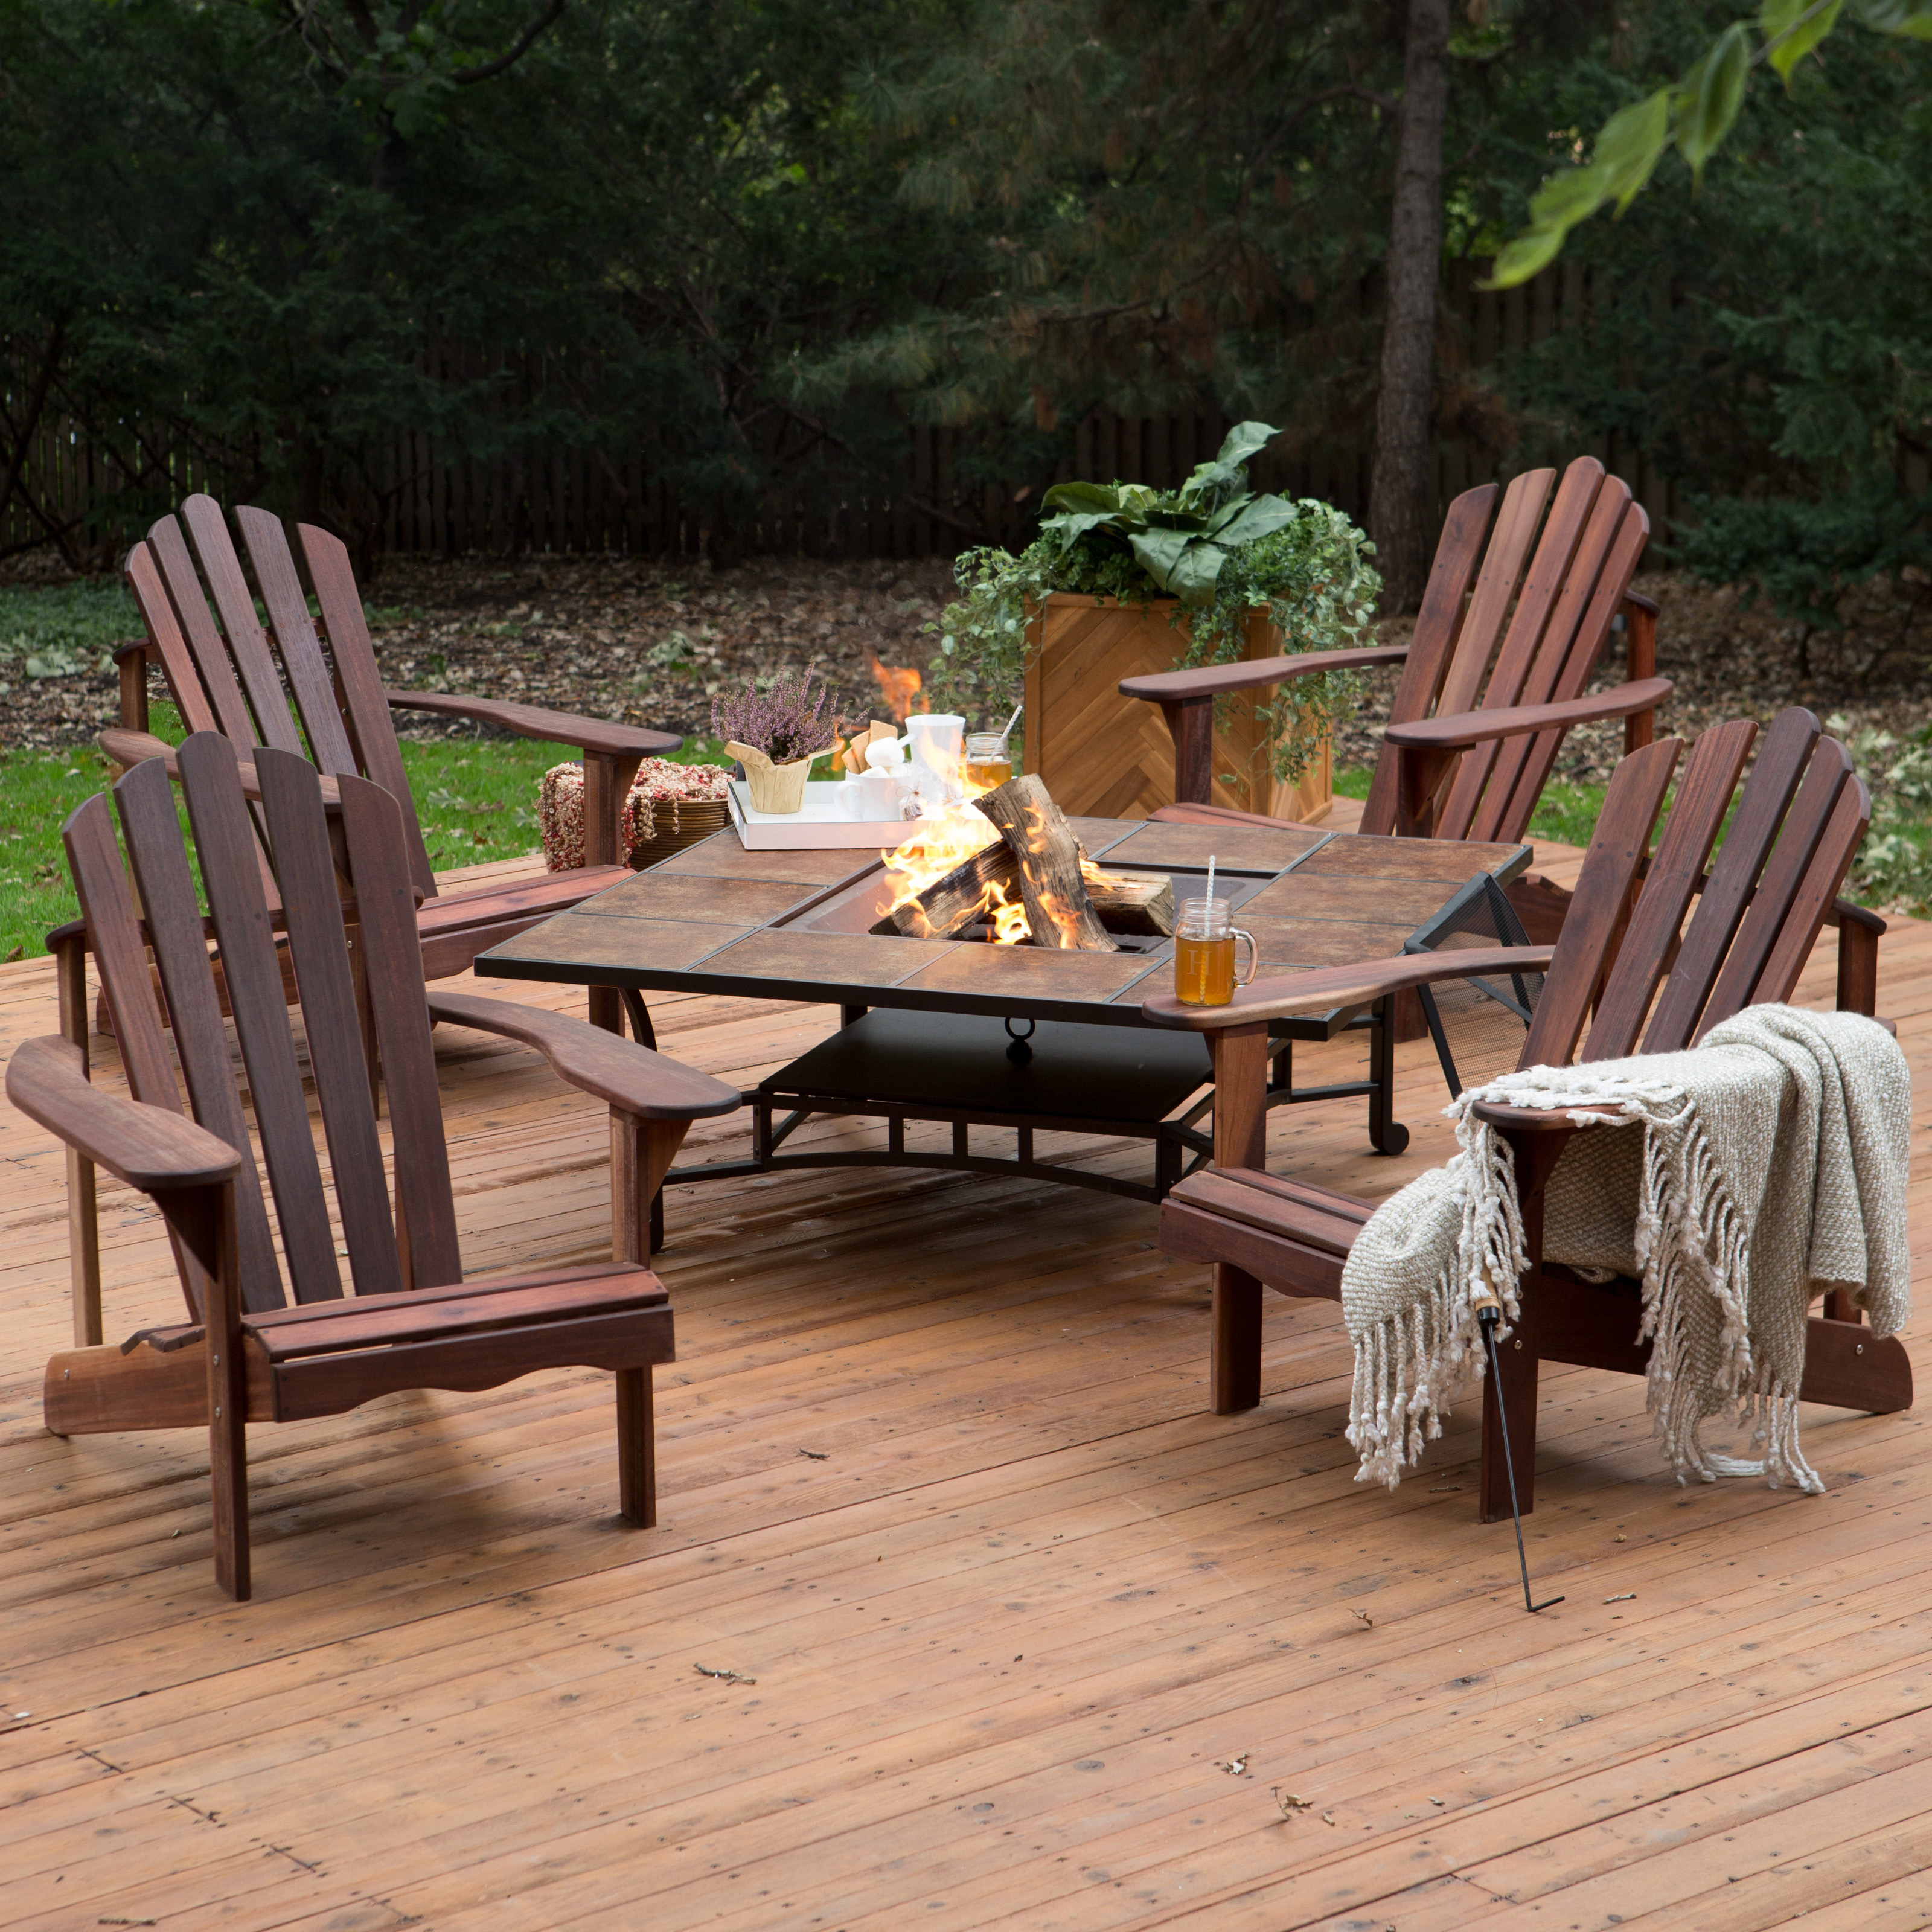 Belham Living Richmond Deluxe Adirondack Chair Fire Pit Chat Set Fire Pit P